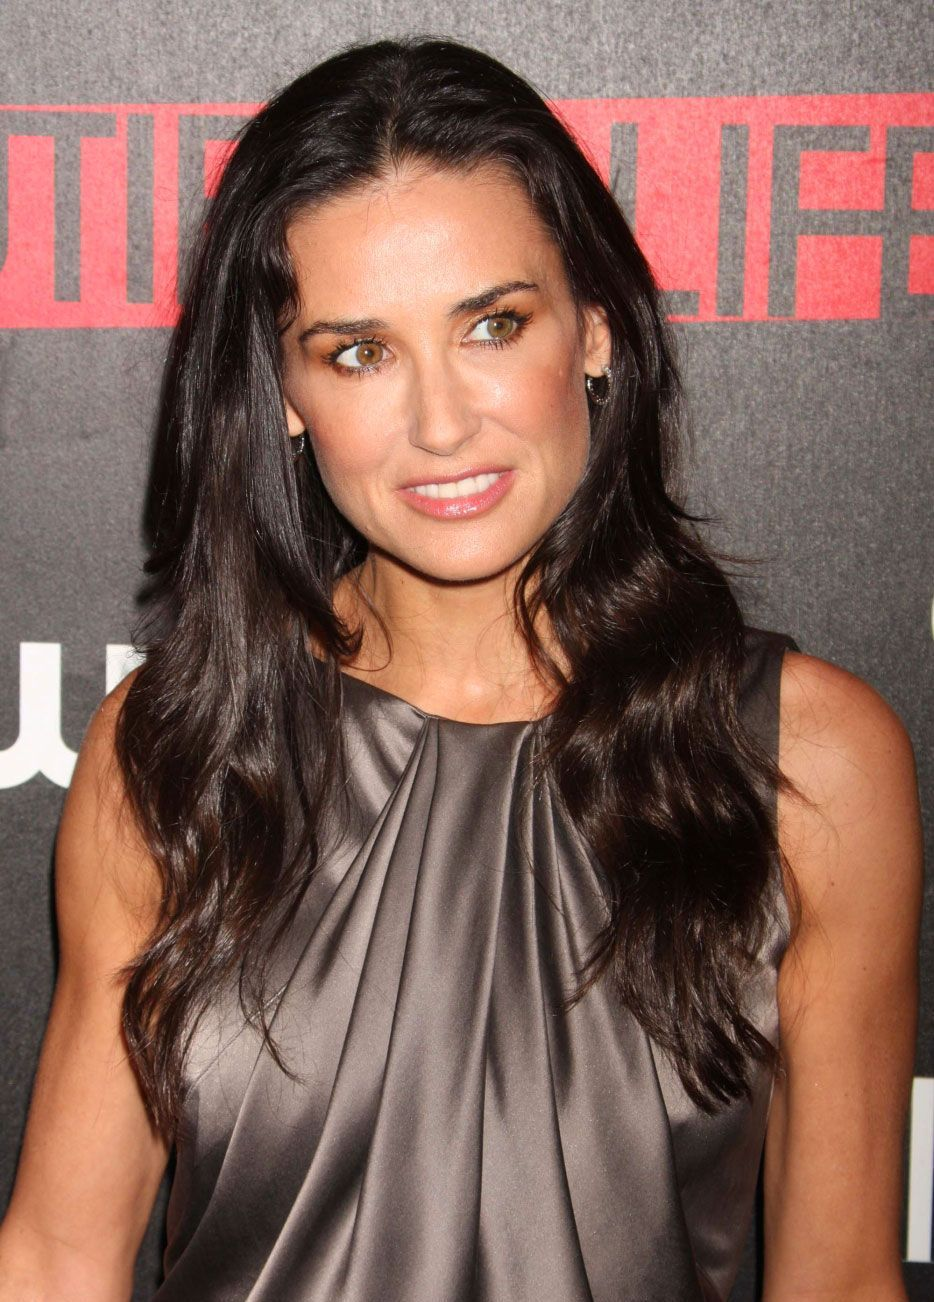 Demi Moore Workout and Diet Secret | Muscle world